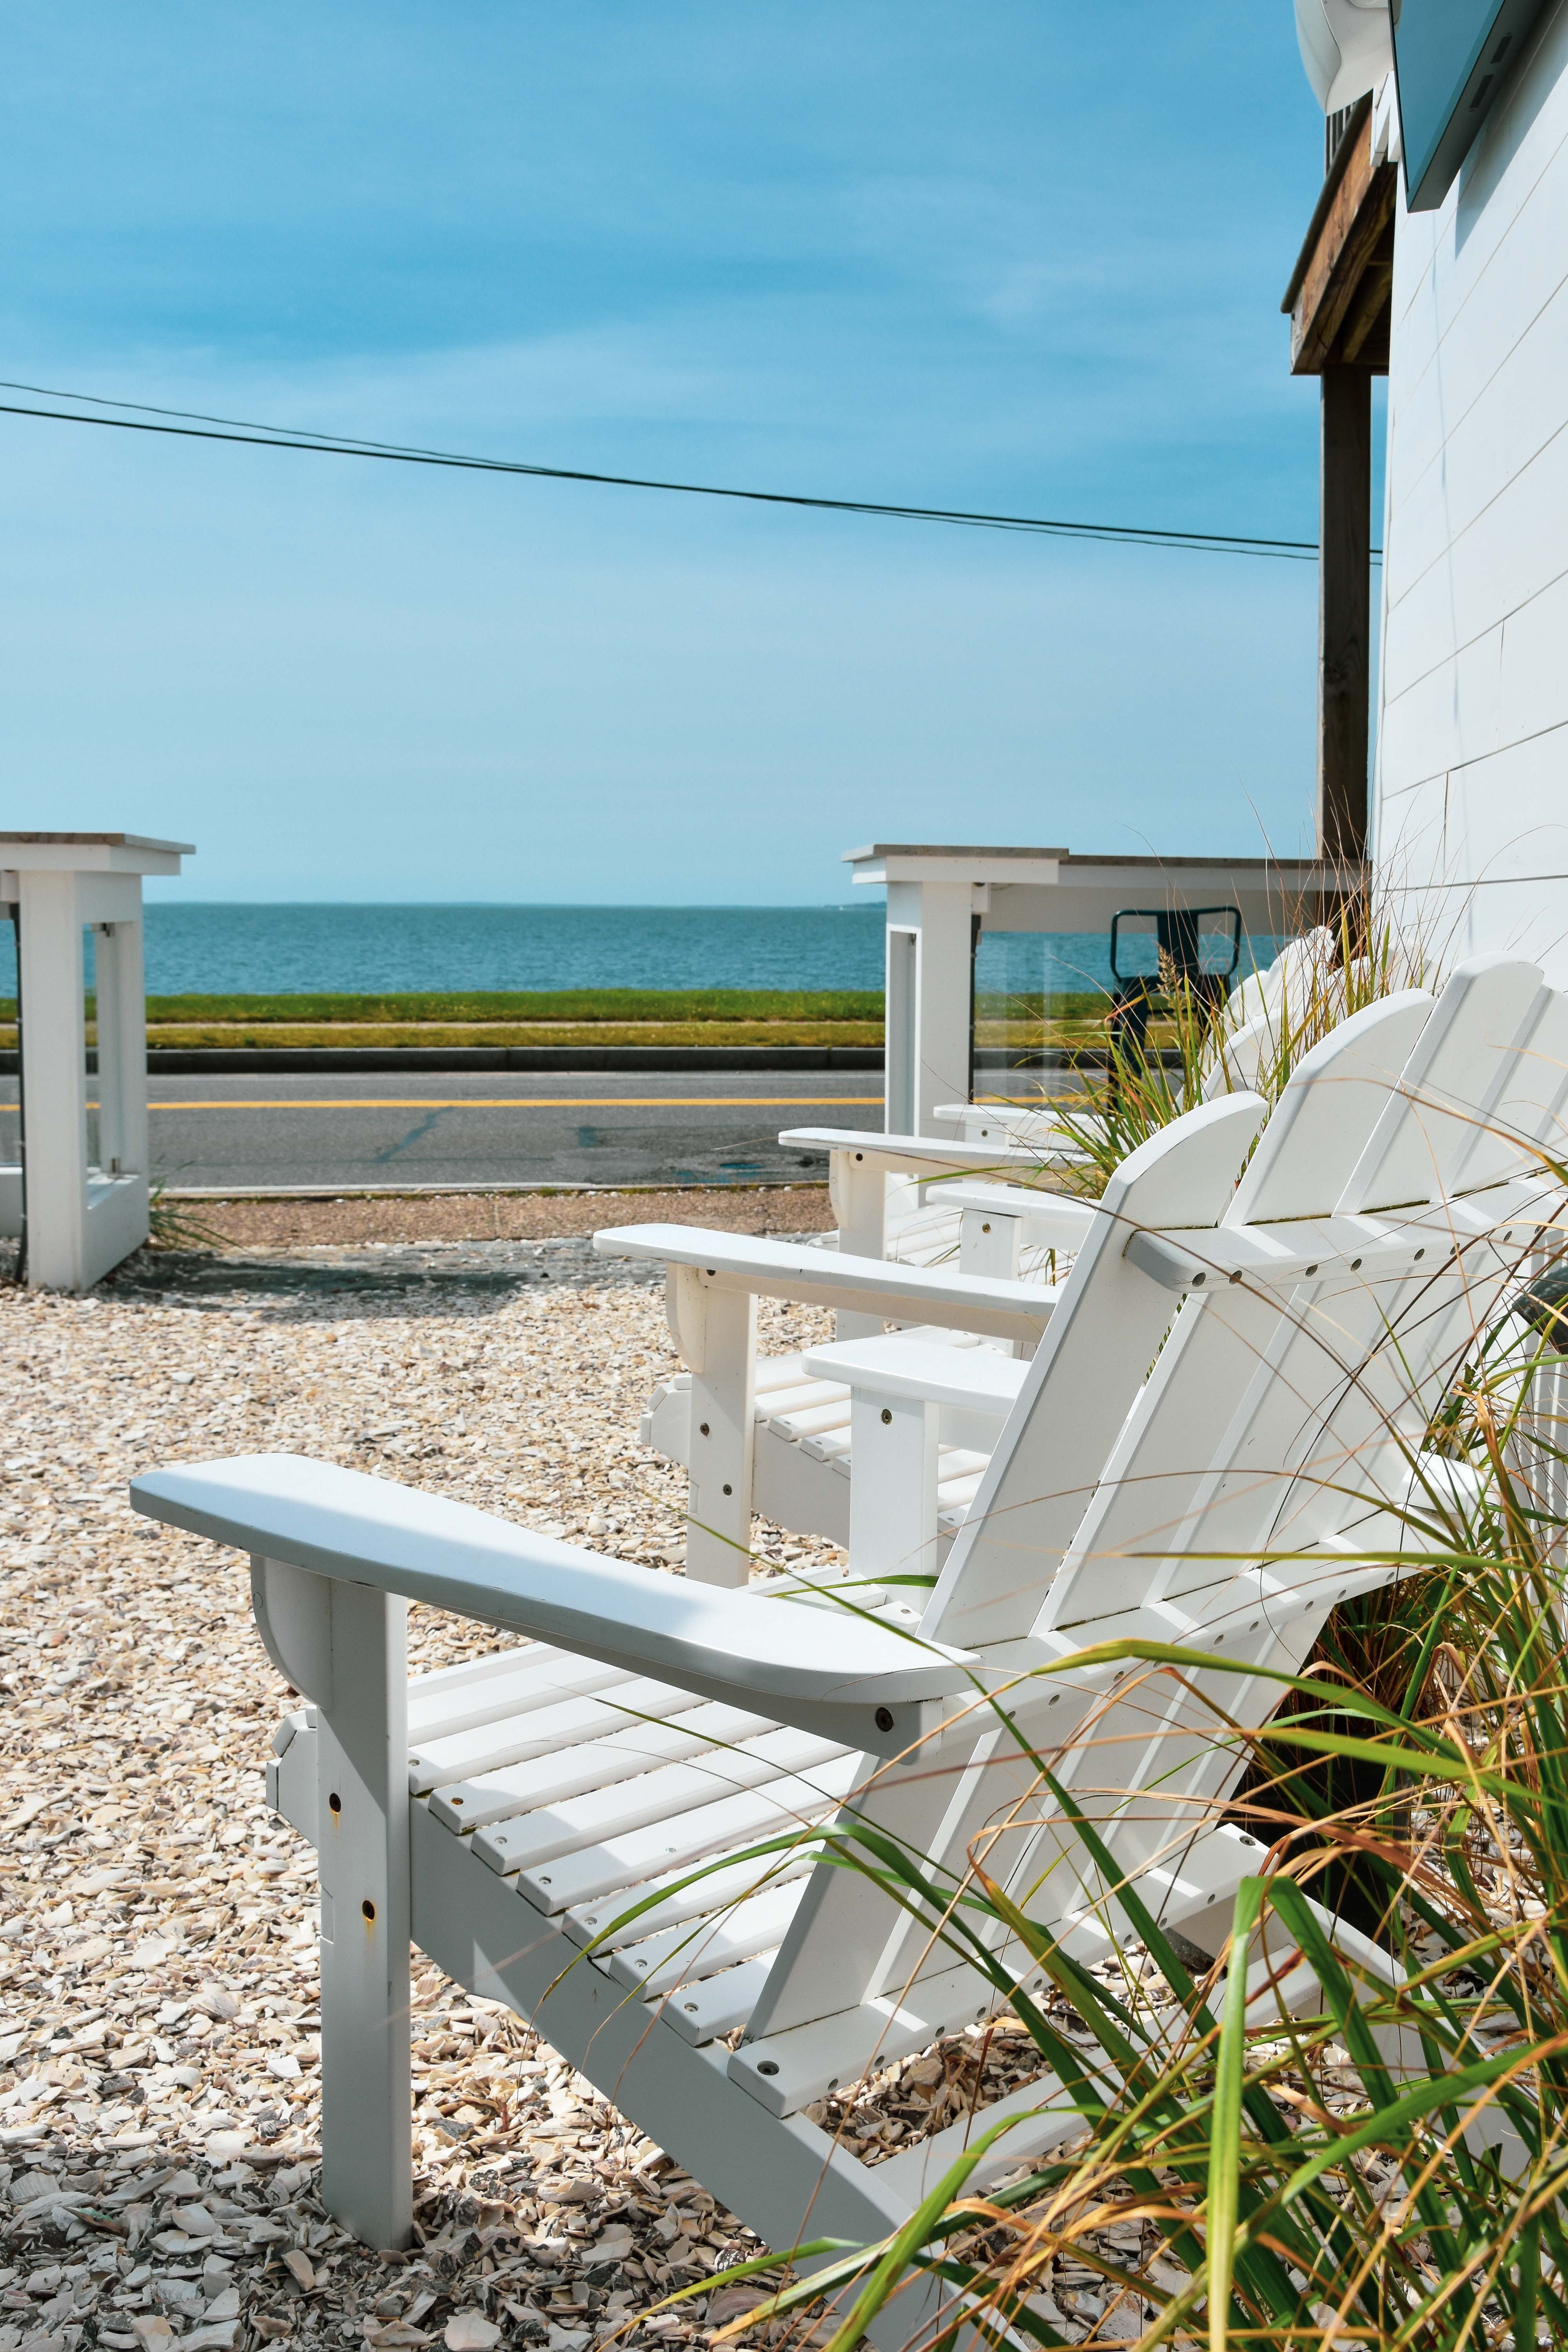 A view of the beach and chairs from Shipwrecked